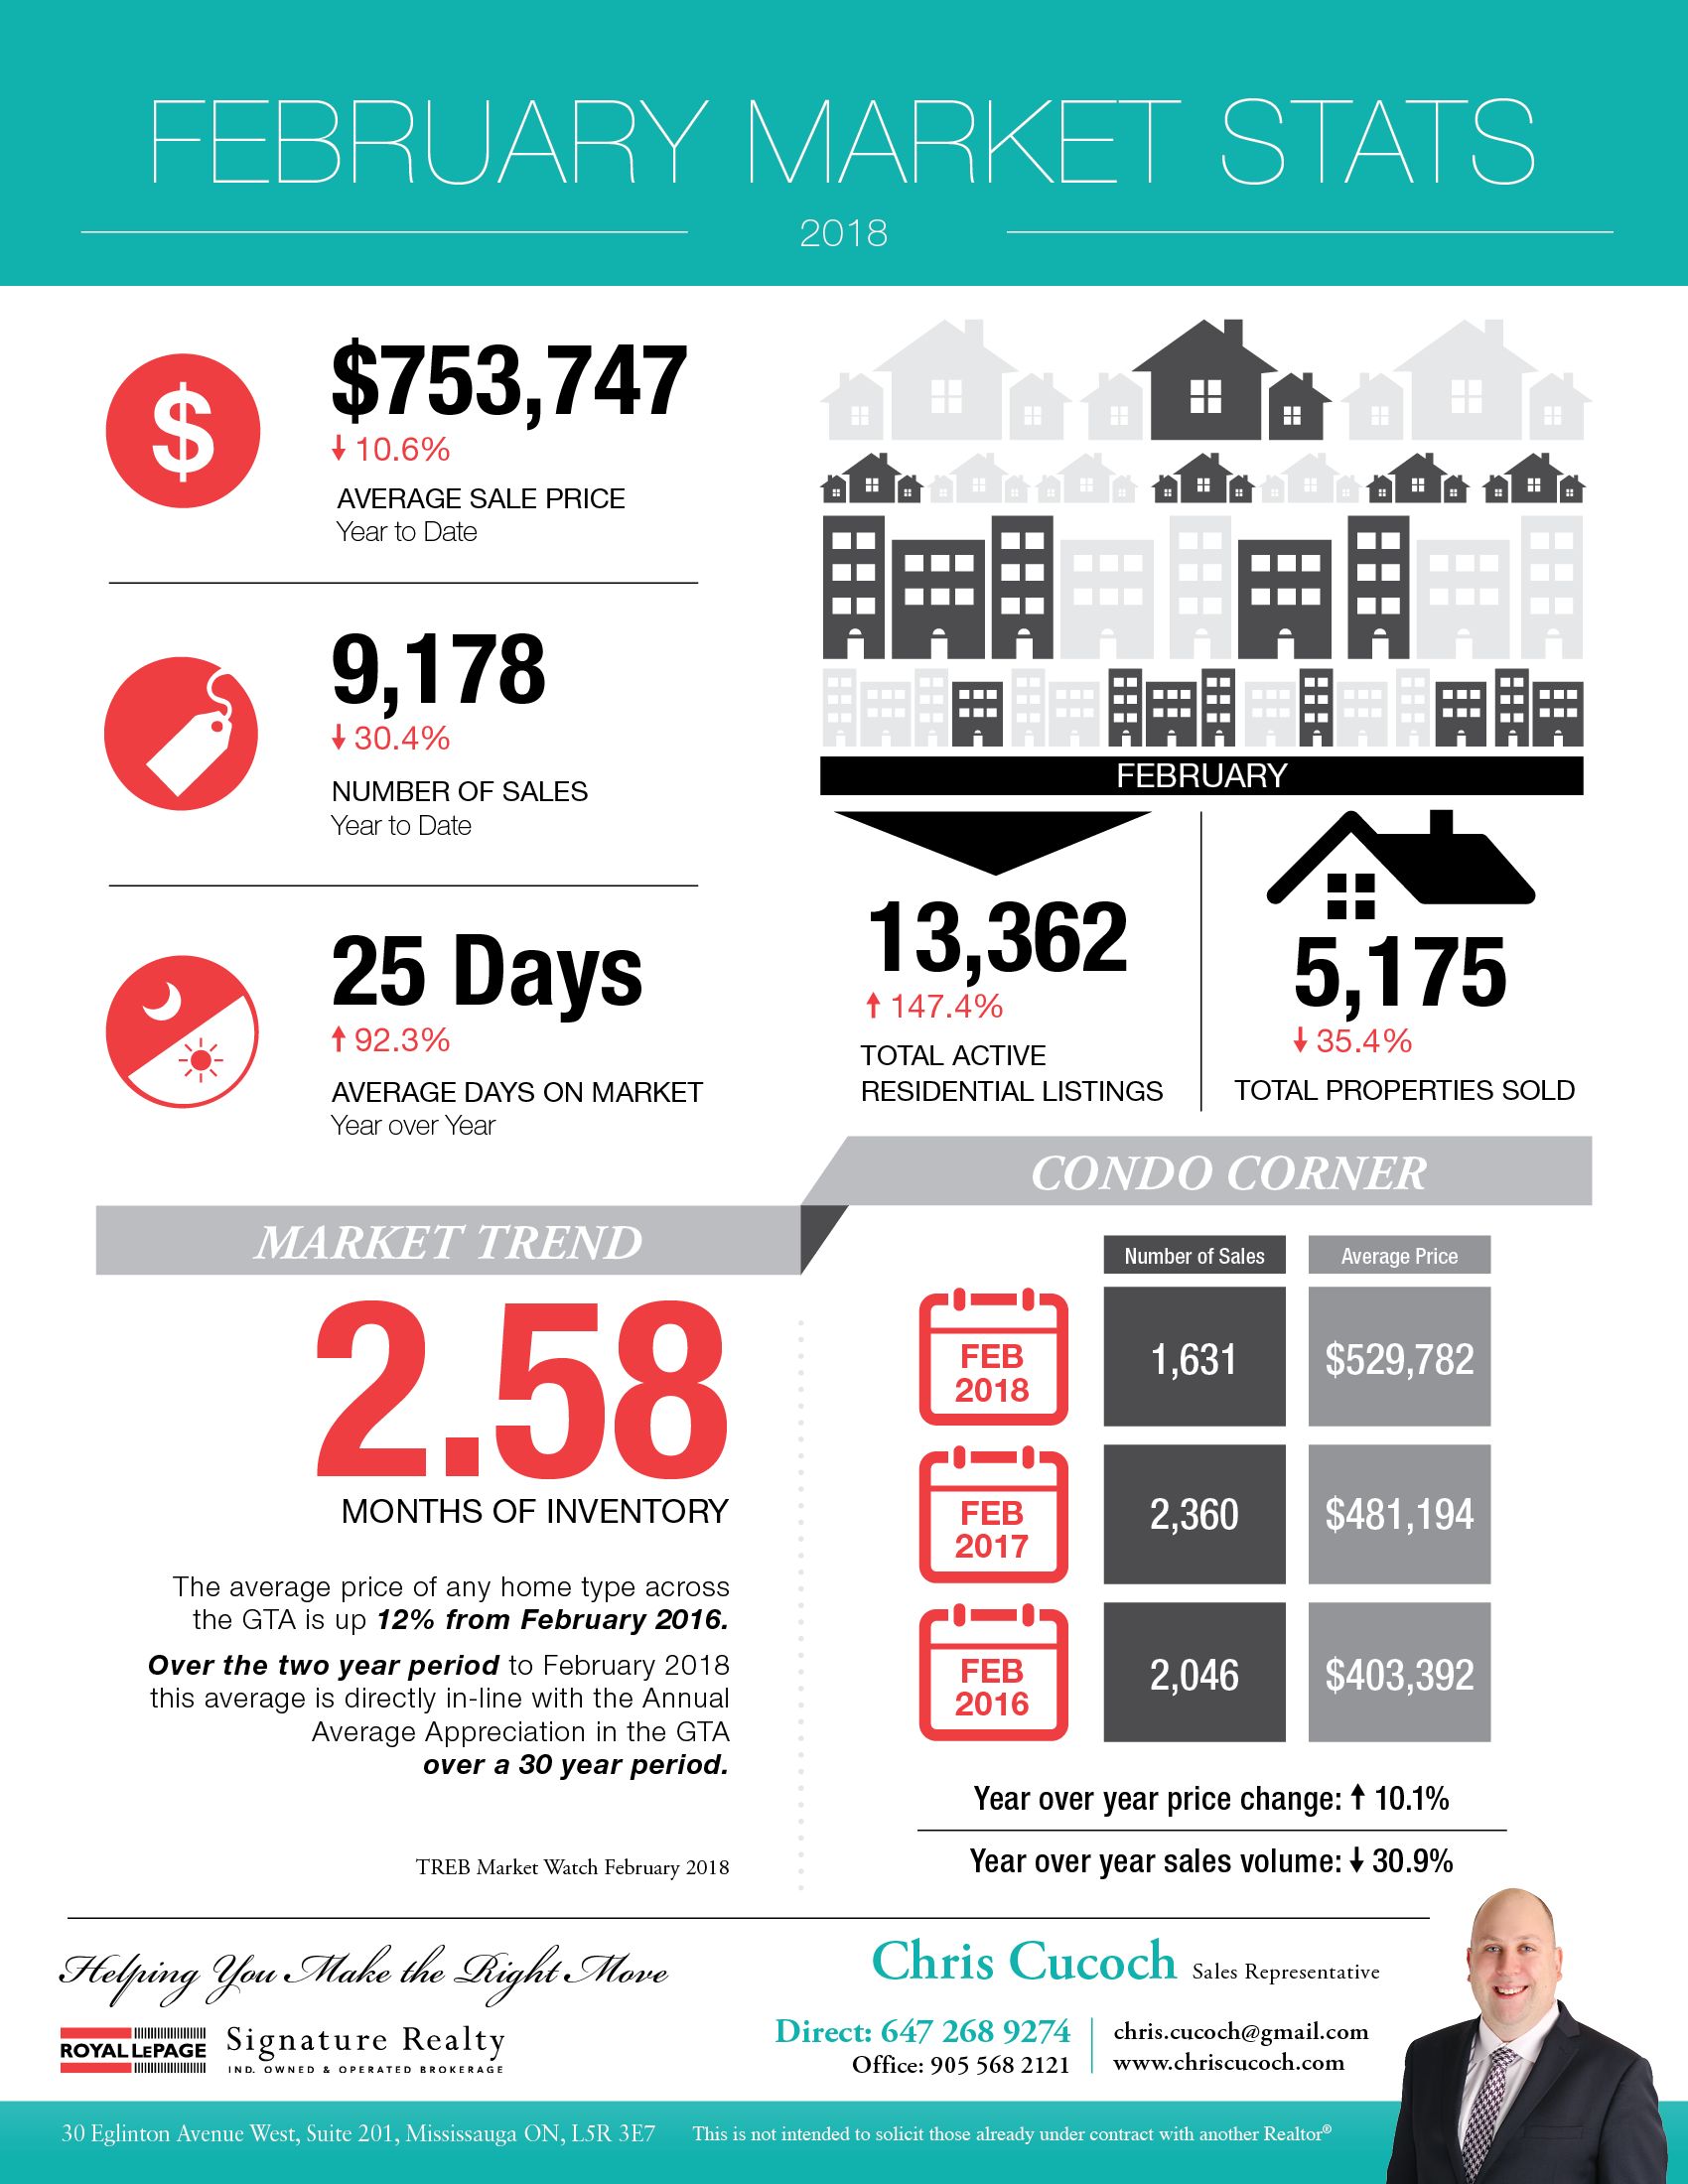 GTA Real Estate Market Statistics Infographic for February 2018